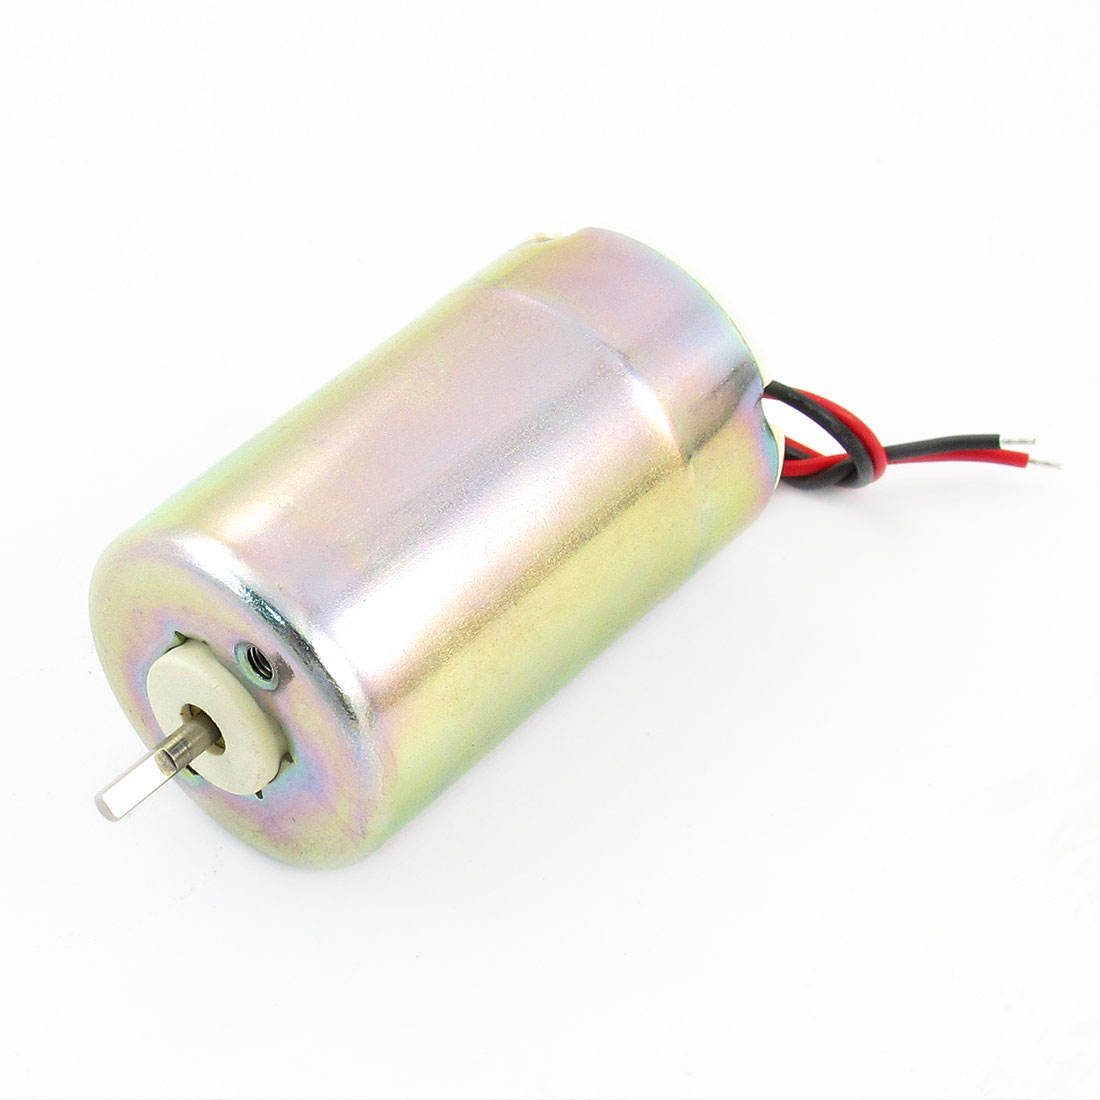 DC 12V 18RPM 3mm Dia Shaft 2 Terminal Reducing Gear Motor Replacement Parts